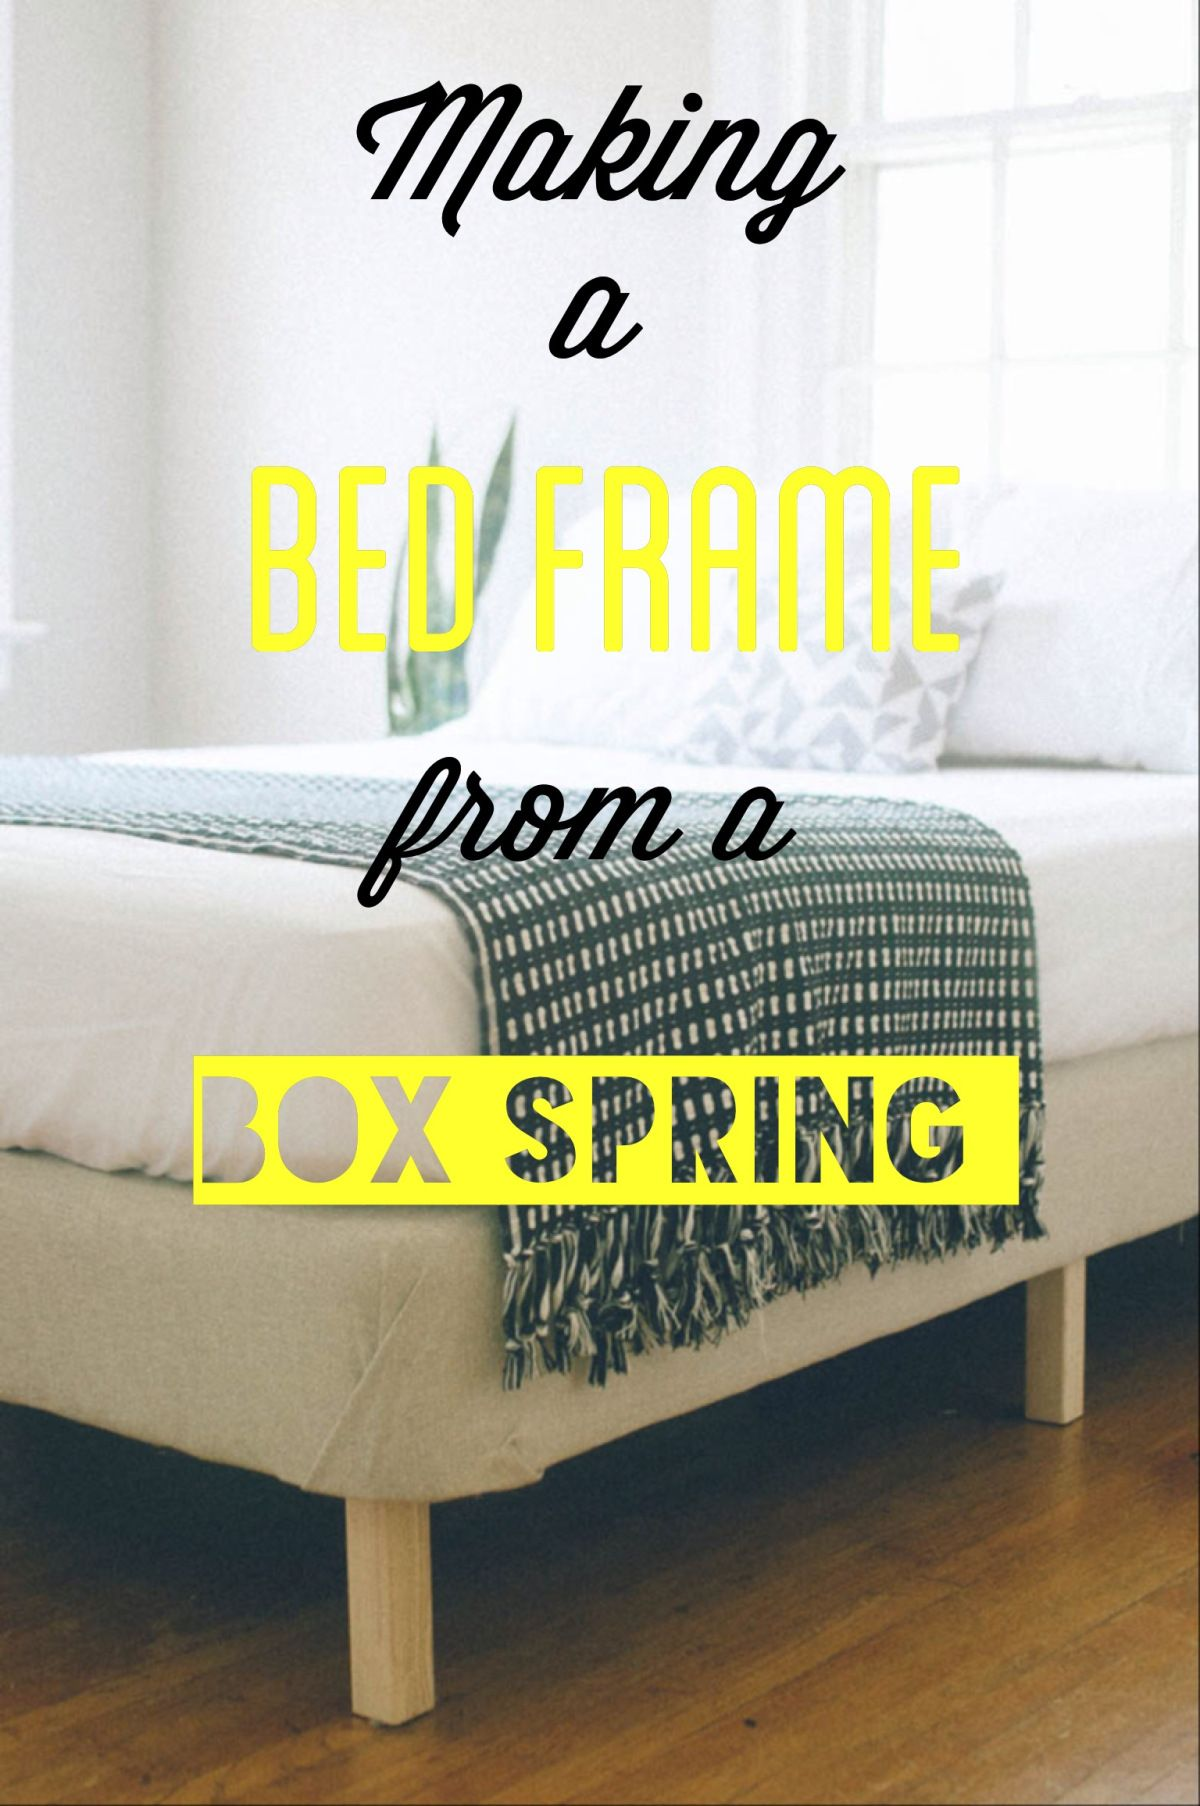 diy bed frame by adding simple legs and upholstery to box spring very simple and